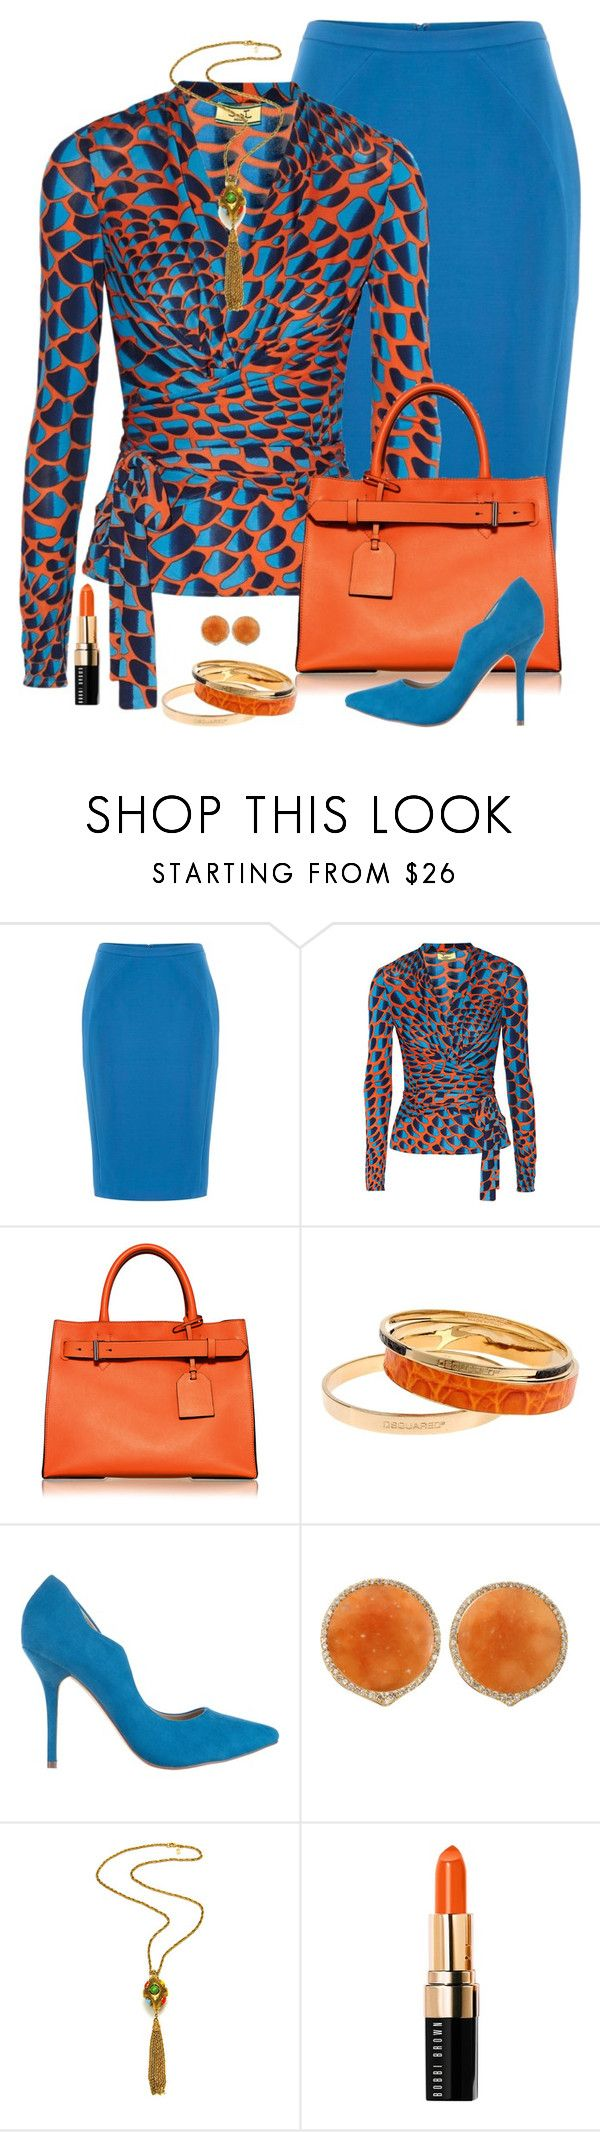 """""""Untitled #2703"""" by nancymcd ❤ liked on Polyvore featuring Issa, Reed Krakoff, Dsquared2, SPURR, Bochic and Bobbi Brown Cosmetics"""